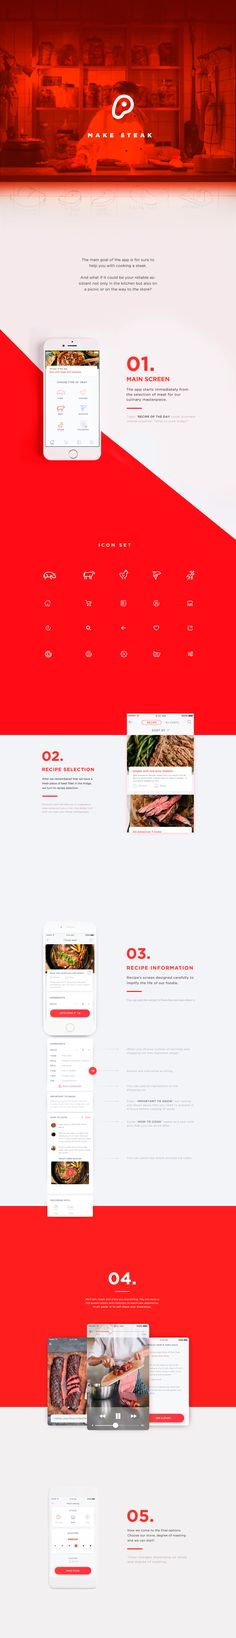 We have analyzed the most important aspects of cooking and chose only necessary functions. Big list of various recipes, smart timer, ability to order right from the app, social part, discount program, learning opportunity. All of those things in one app -…